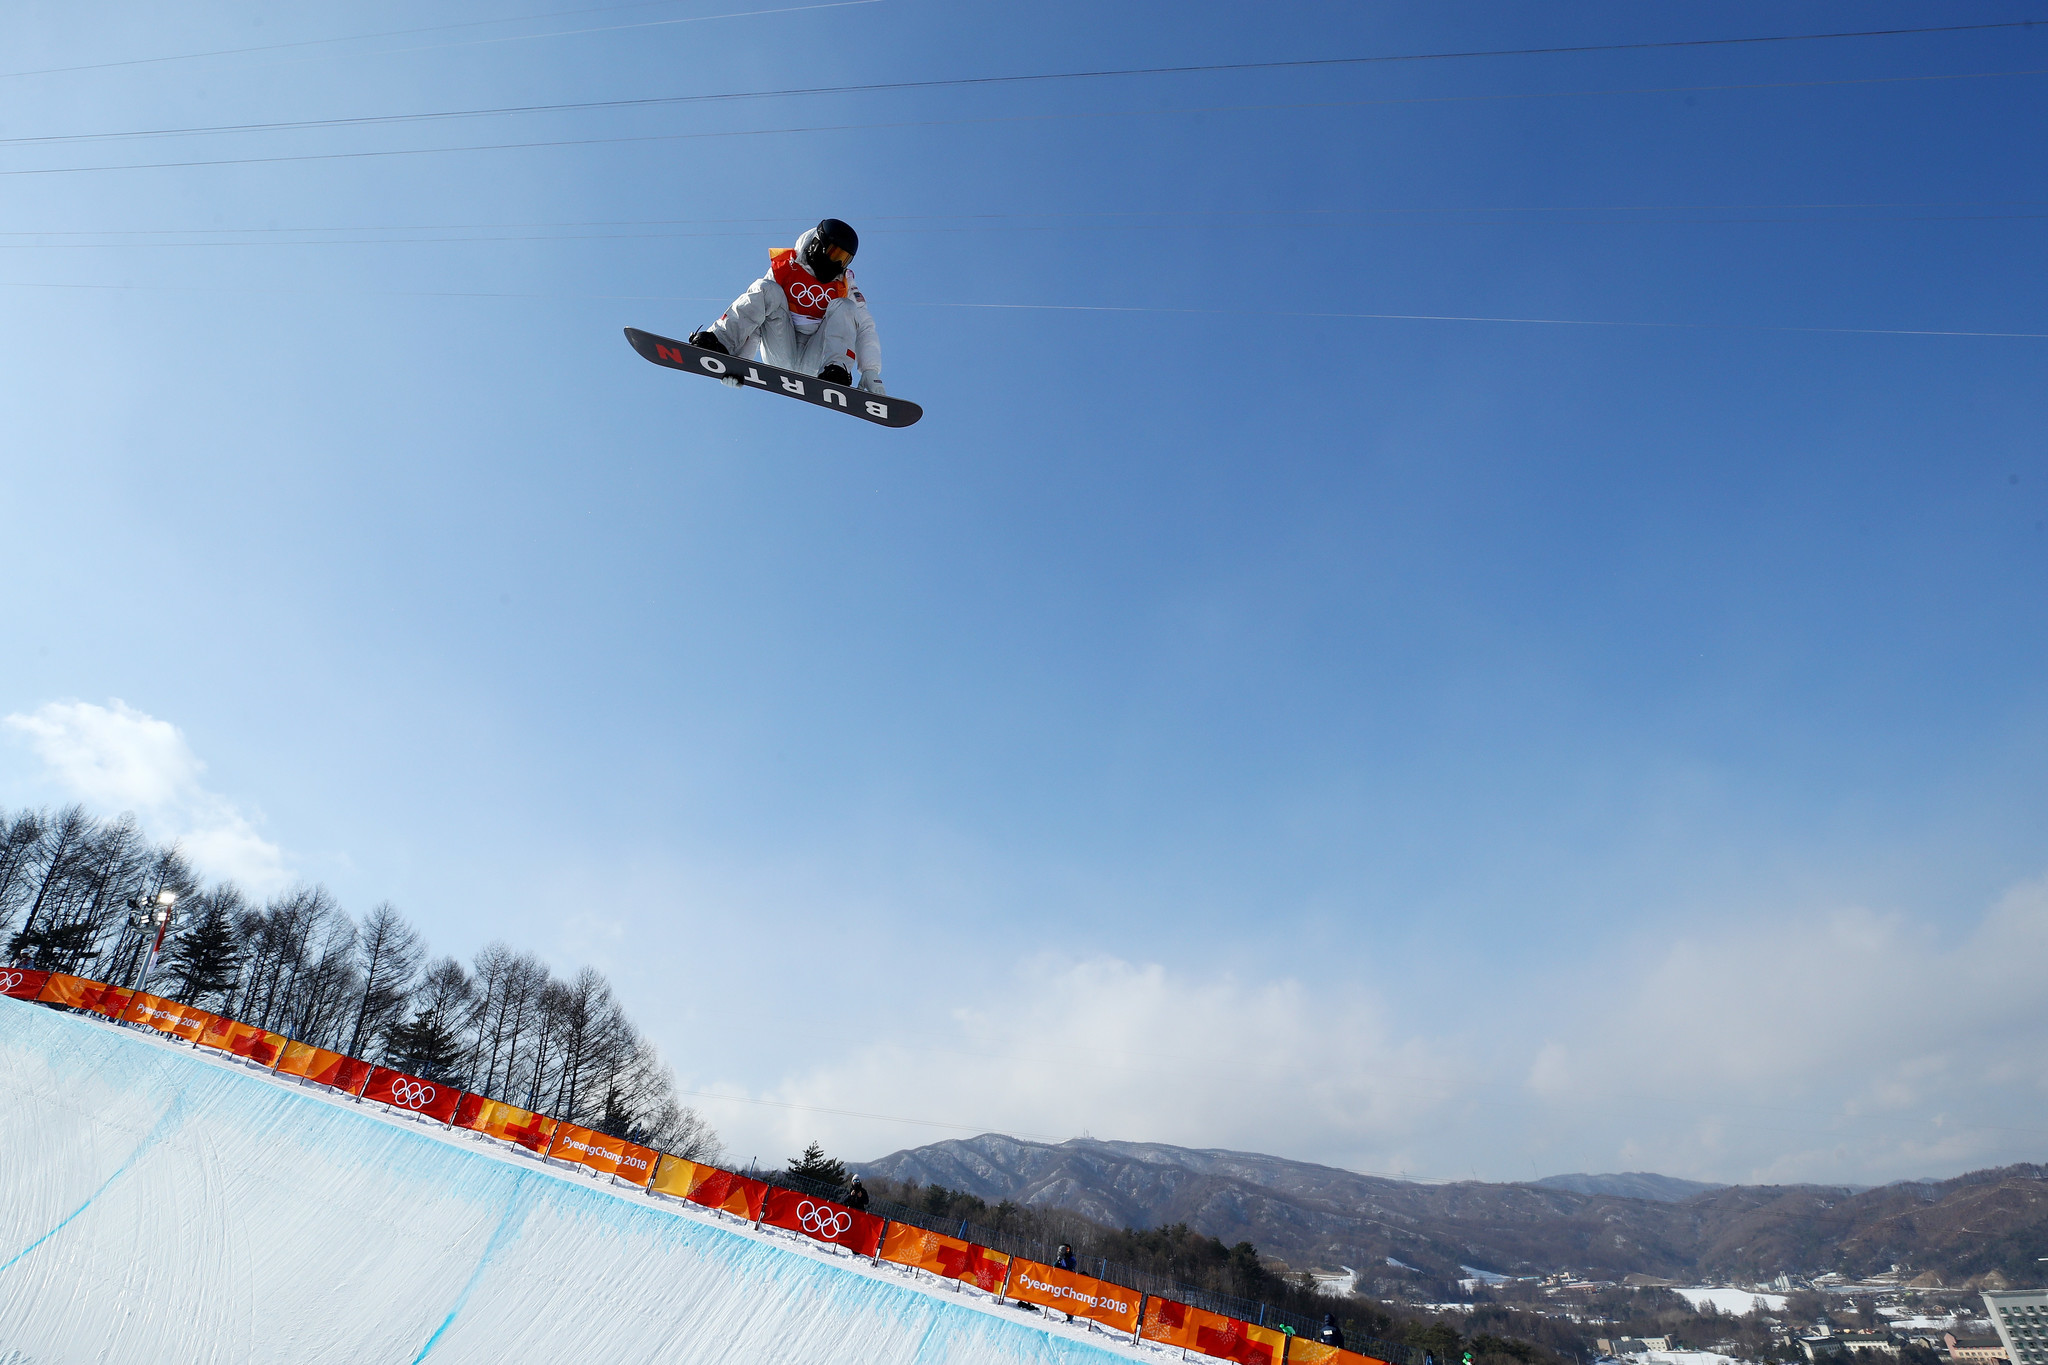 Shaun White gives his all in intense halfpipe qualifying ...